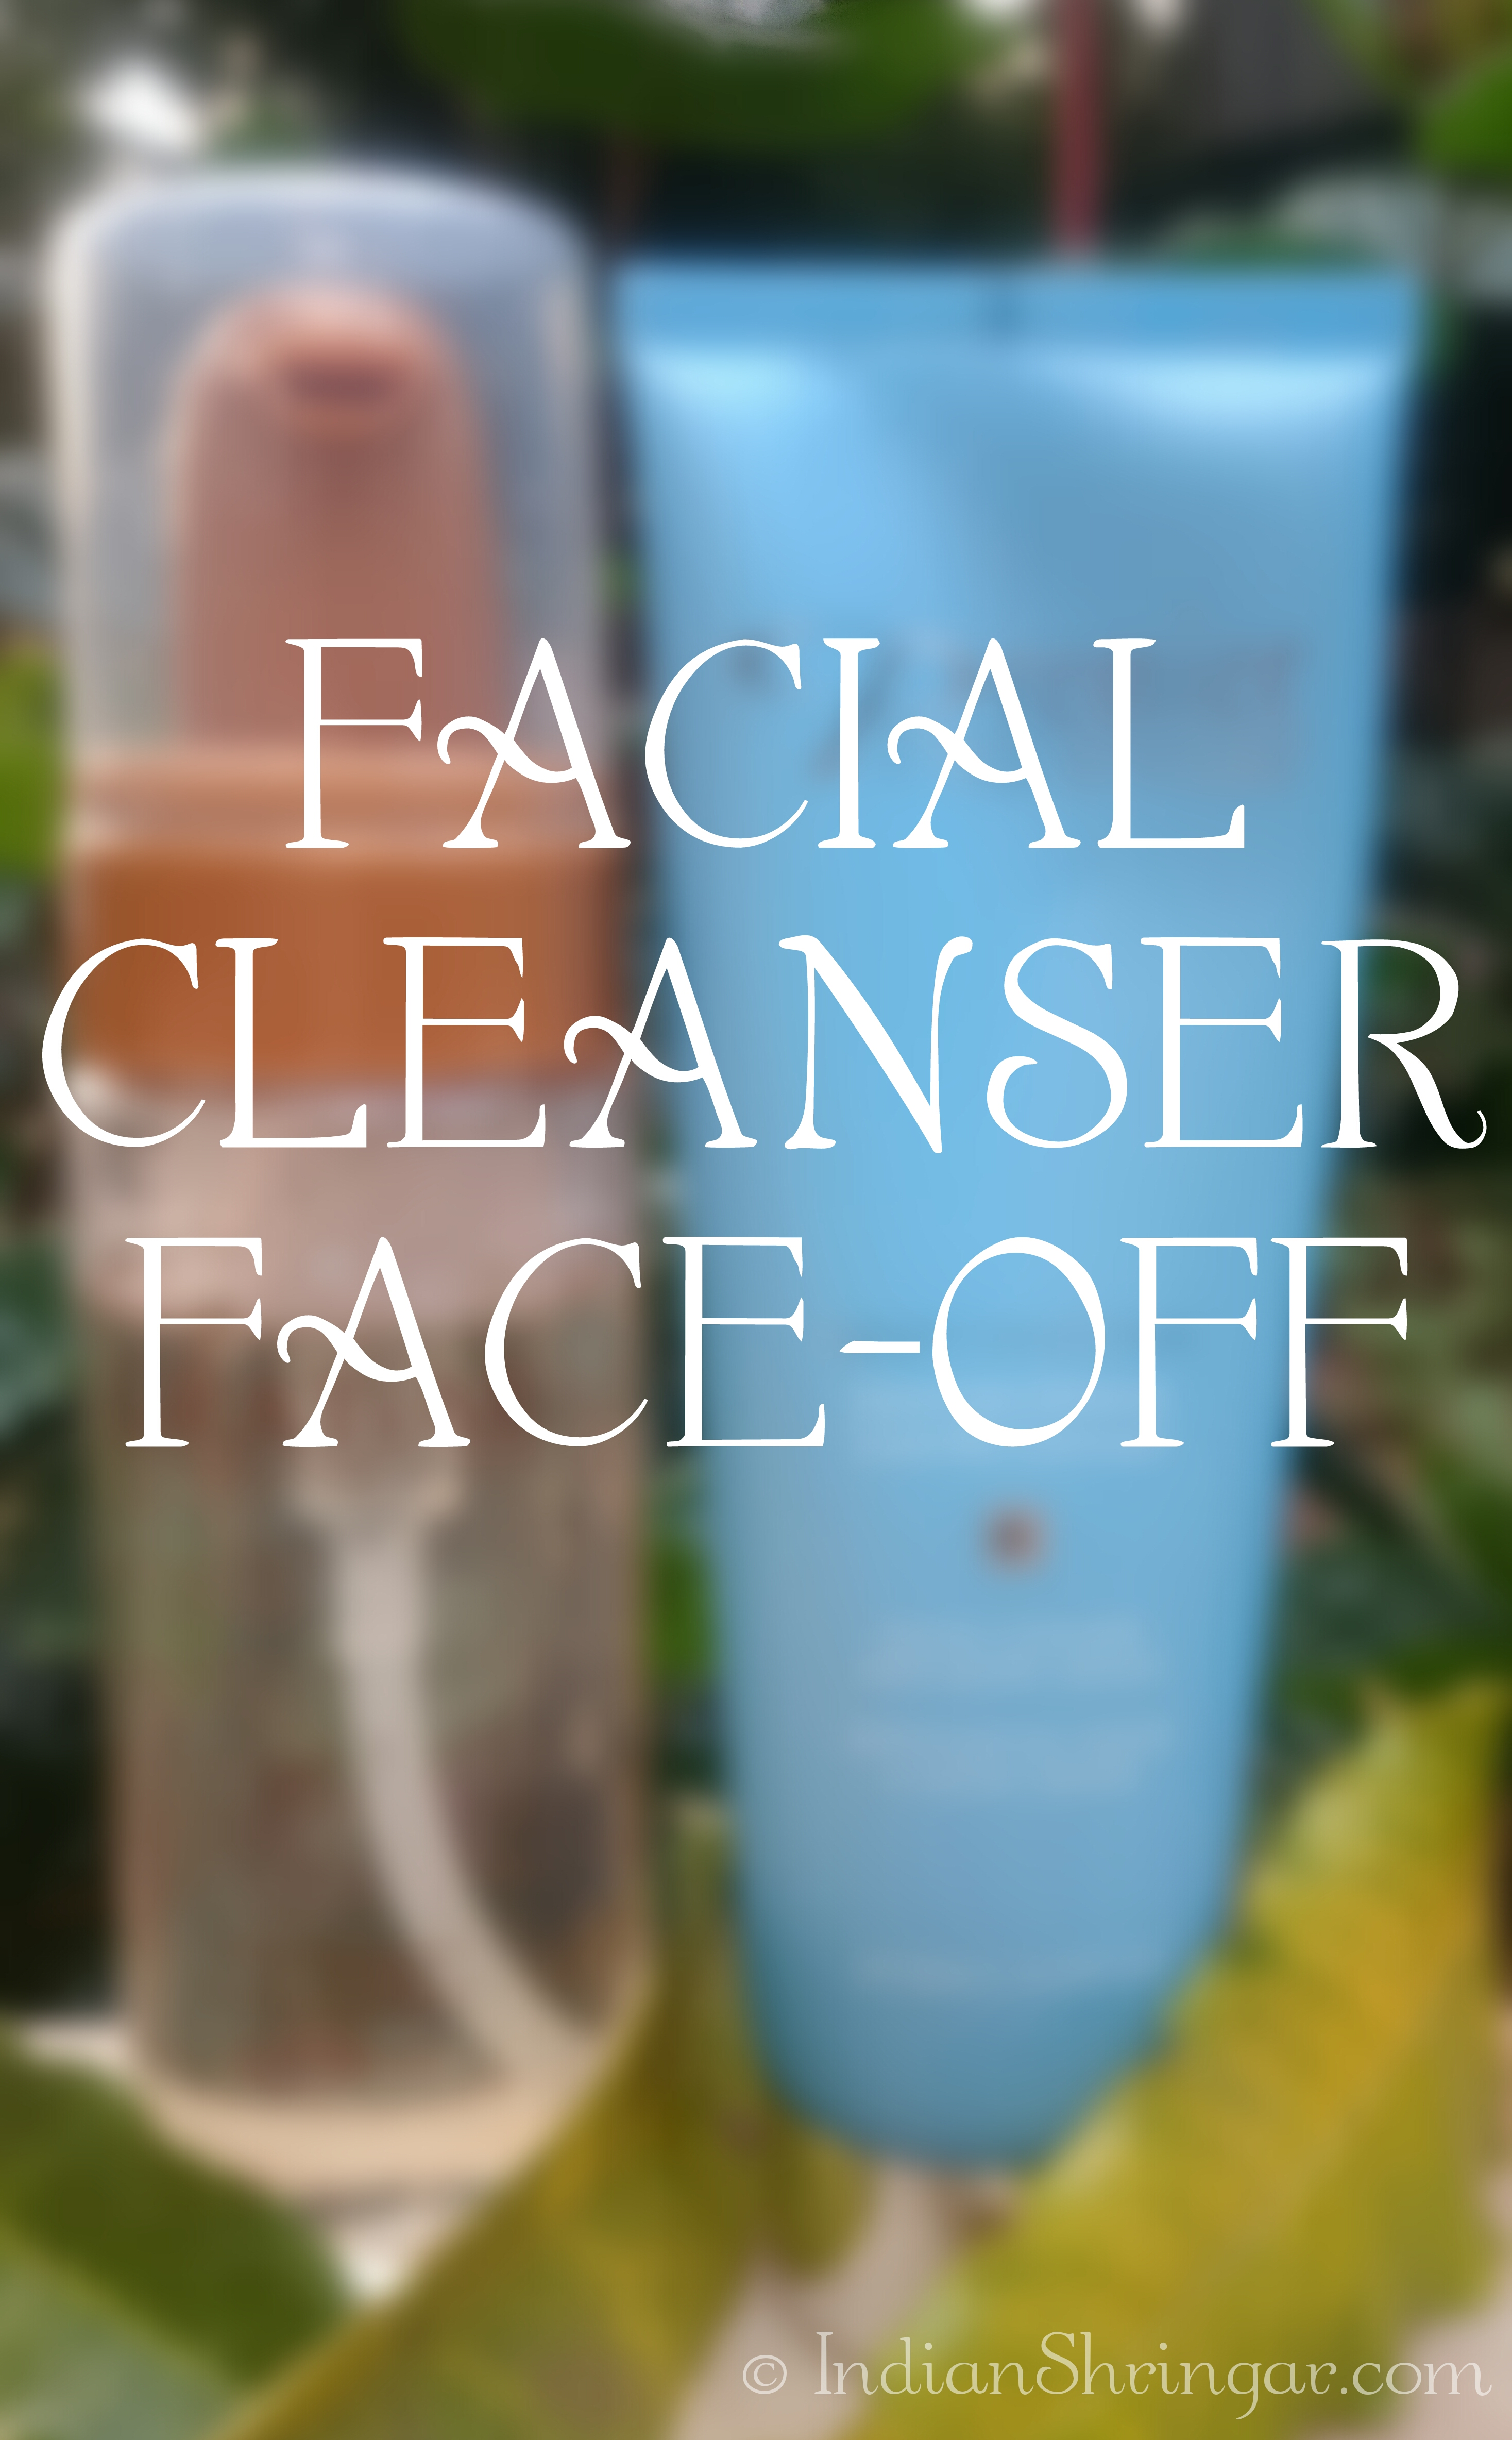 Cleanser Face Off Gratiae vs Premier Dead Sea